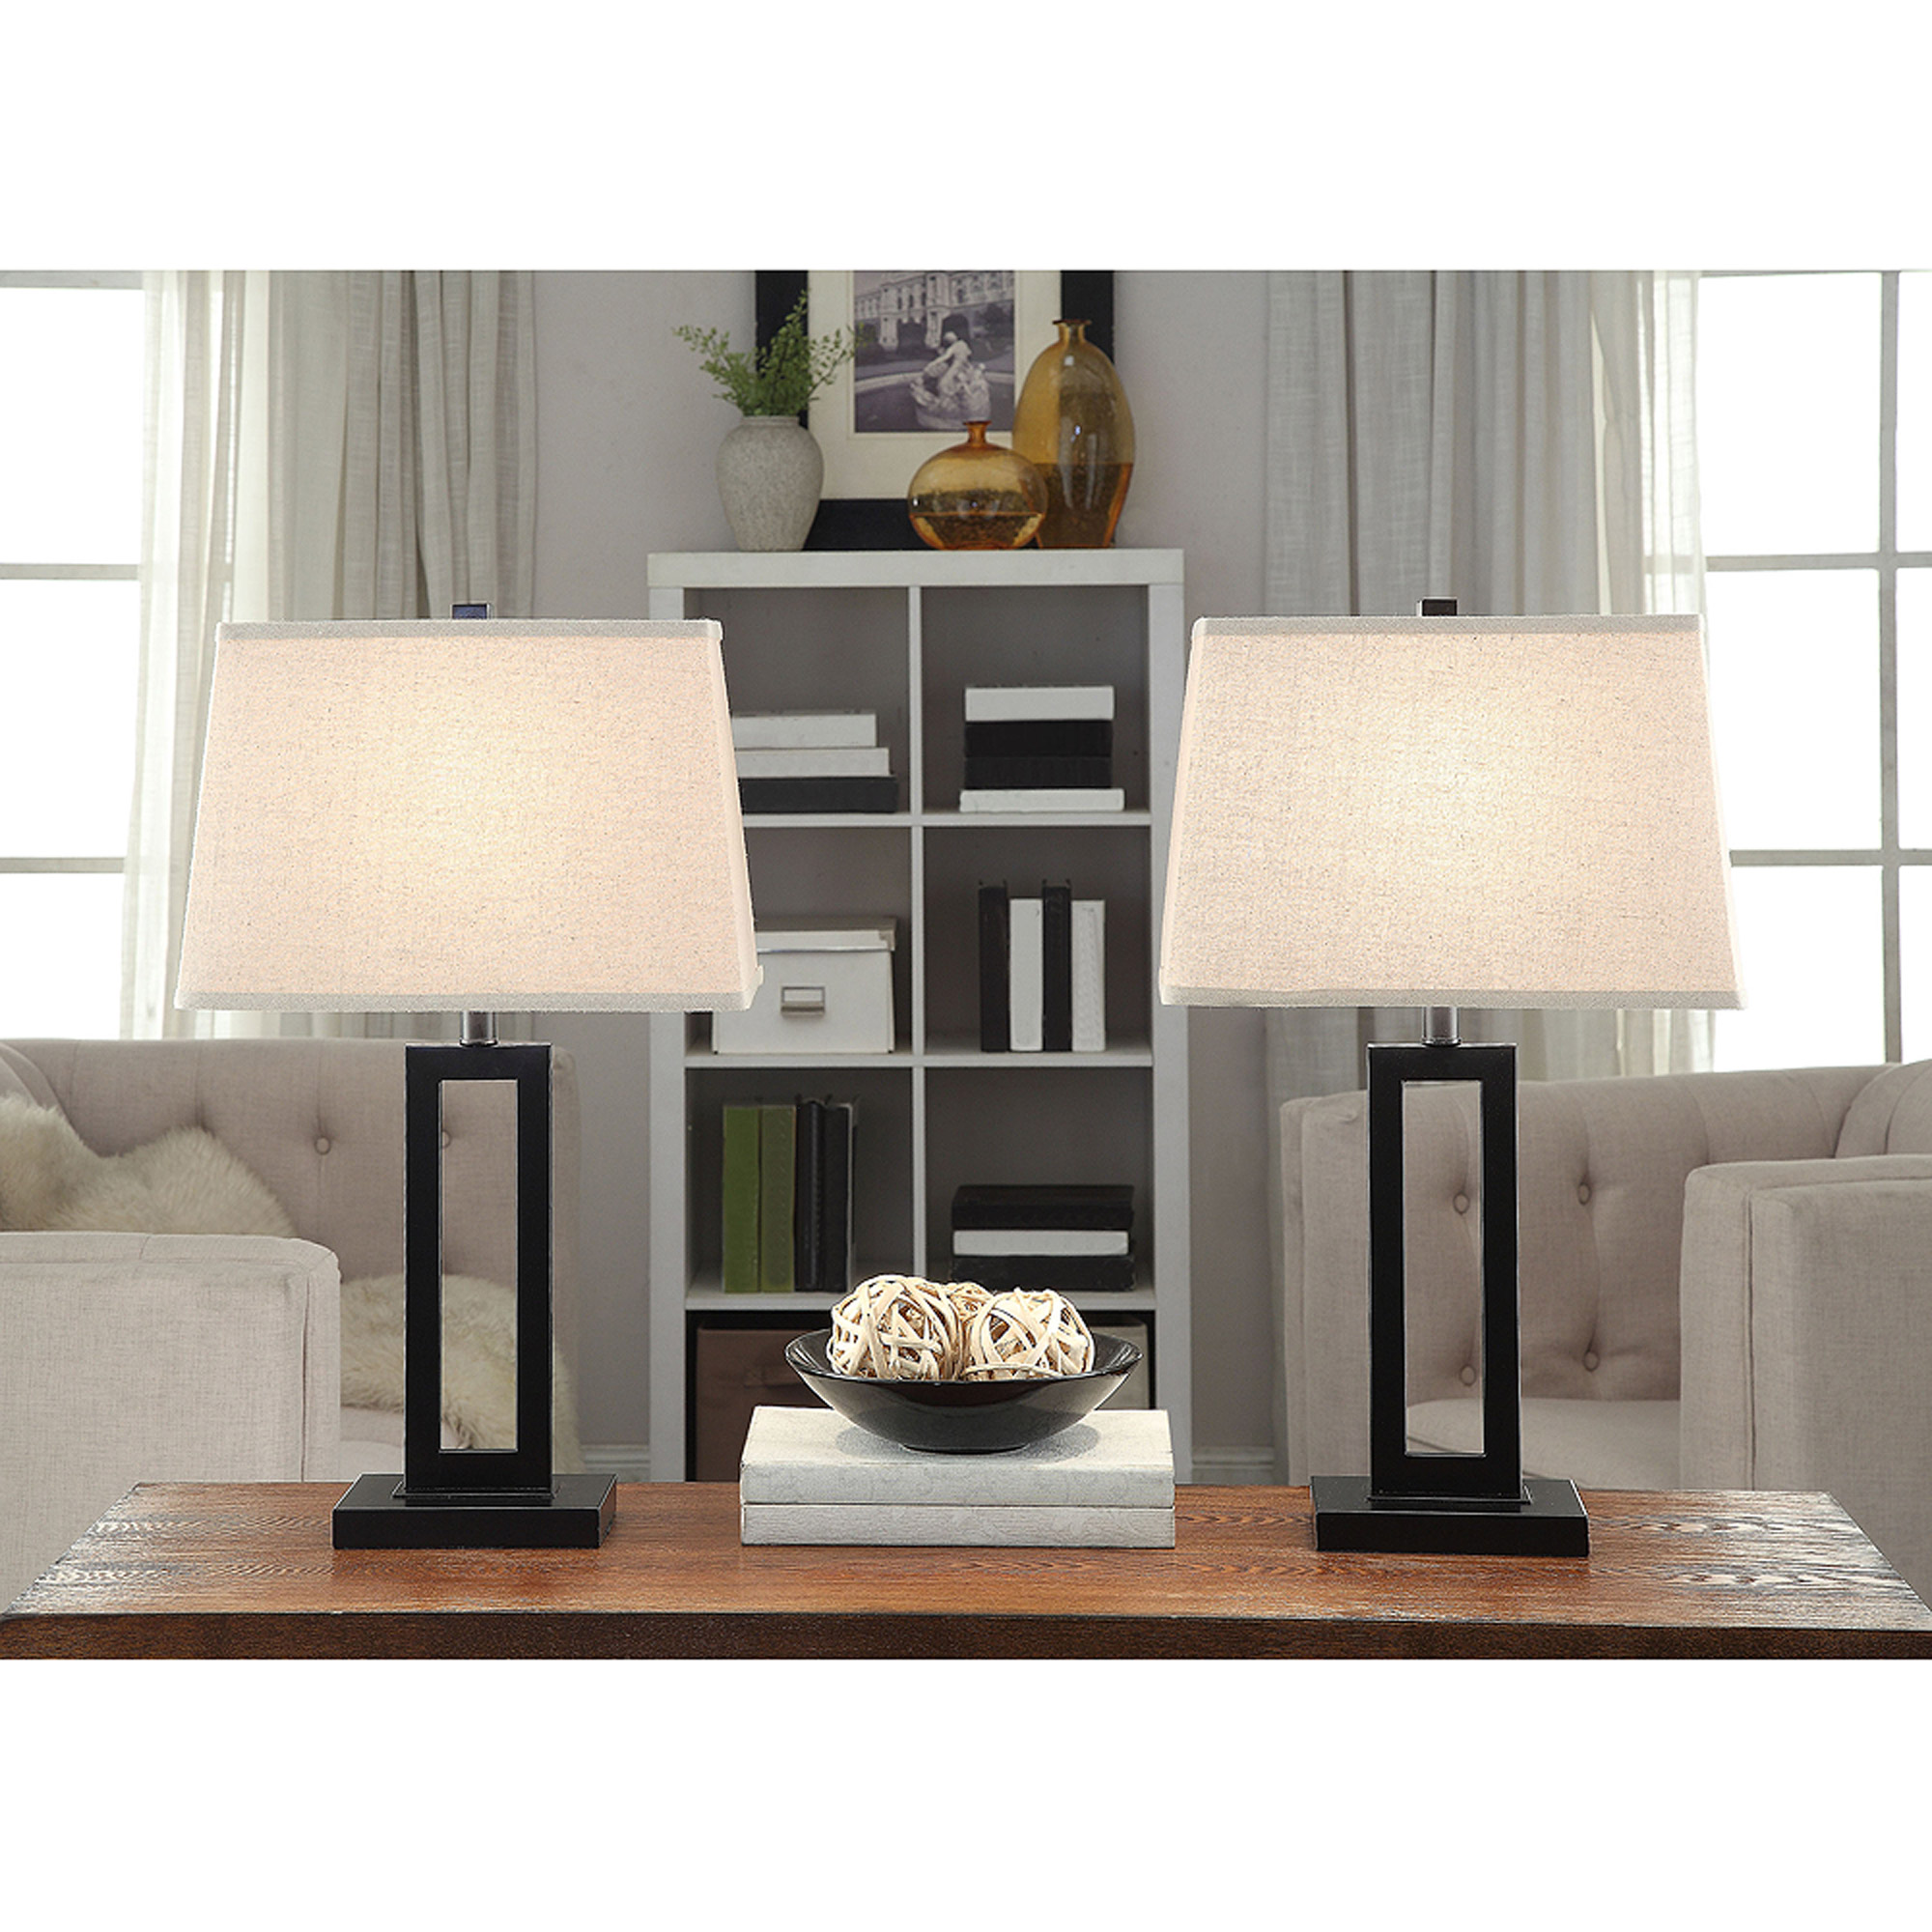 Better Homes and Gardens Open Work Lamps, Set of 2, Black - Walmart.com